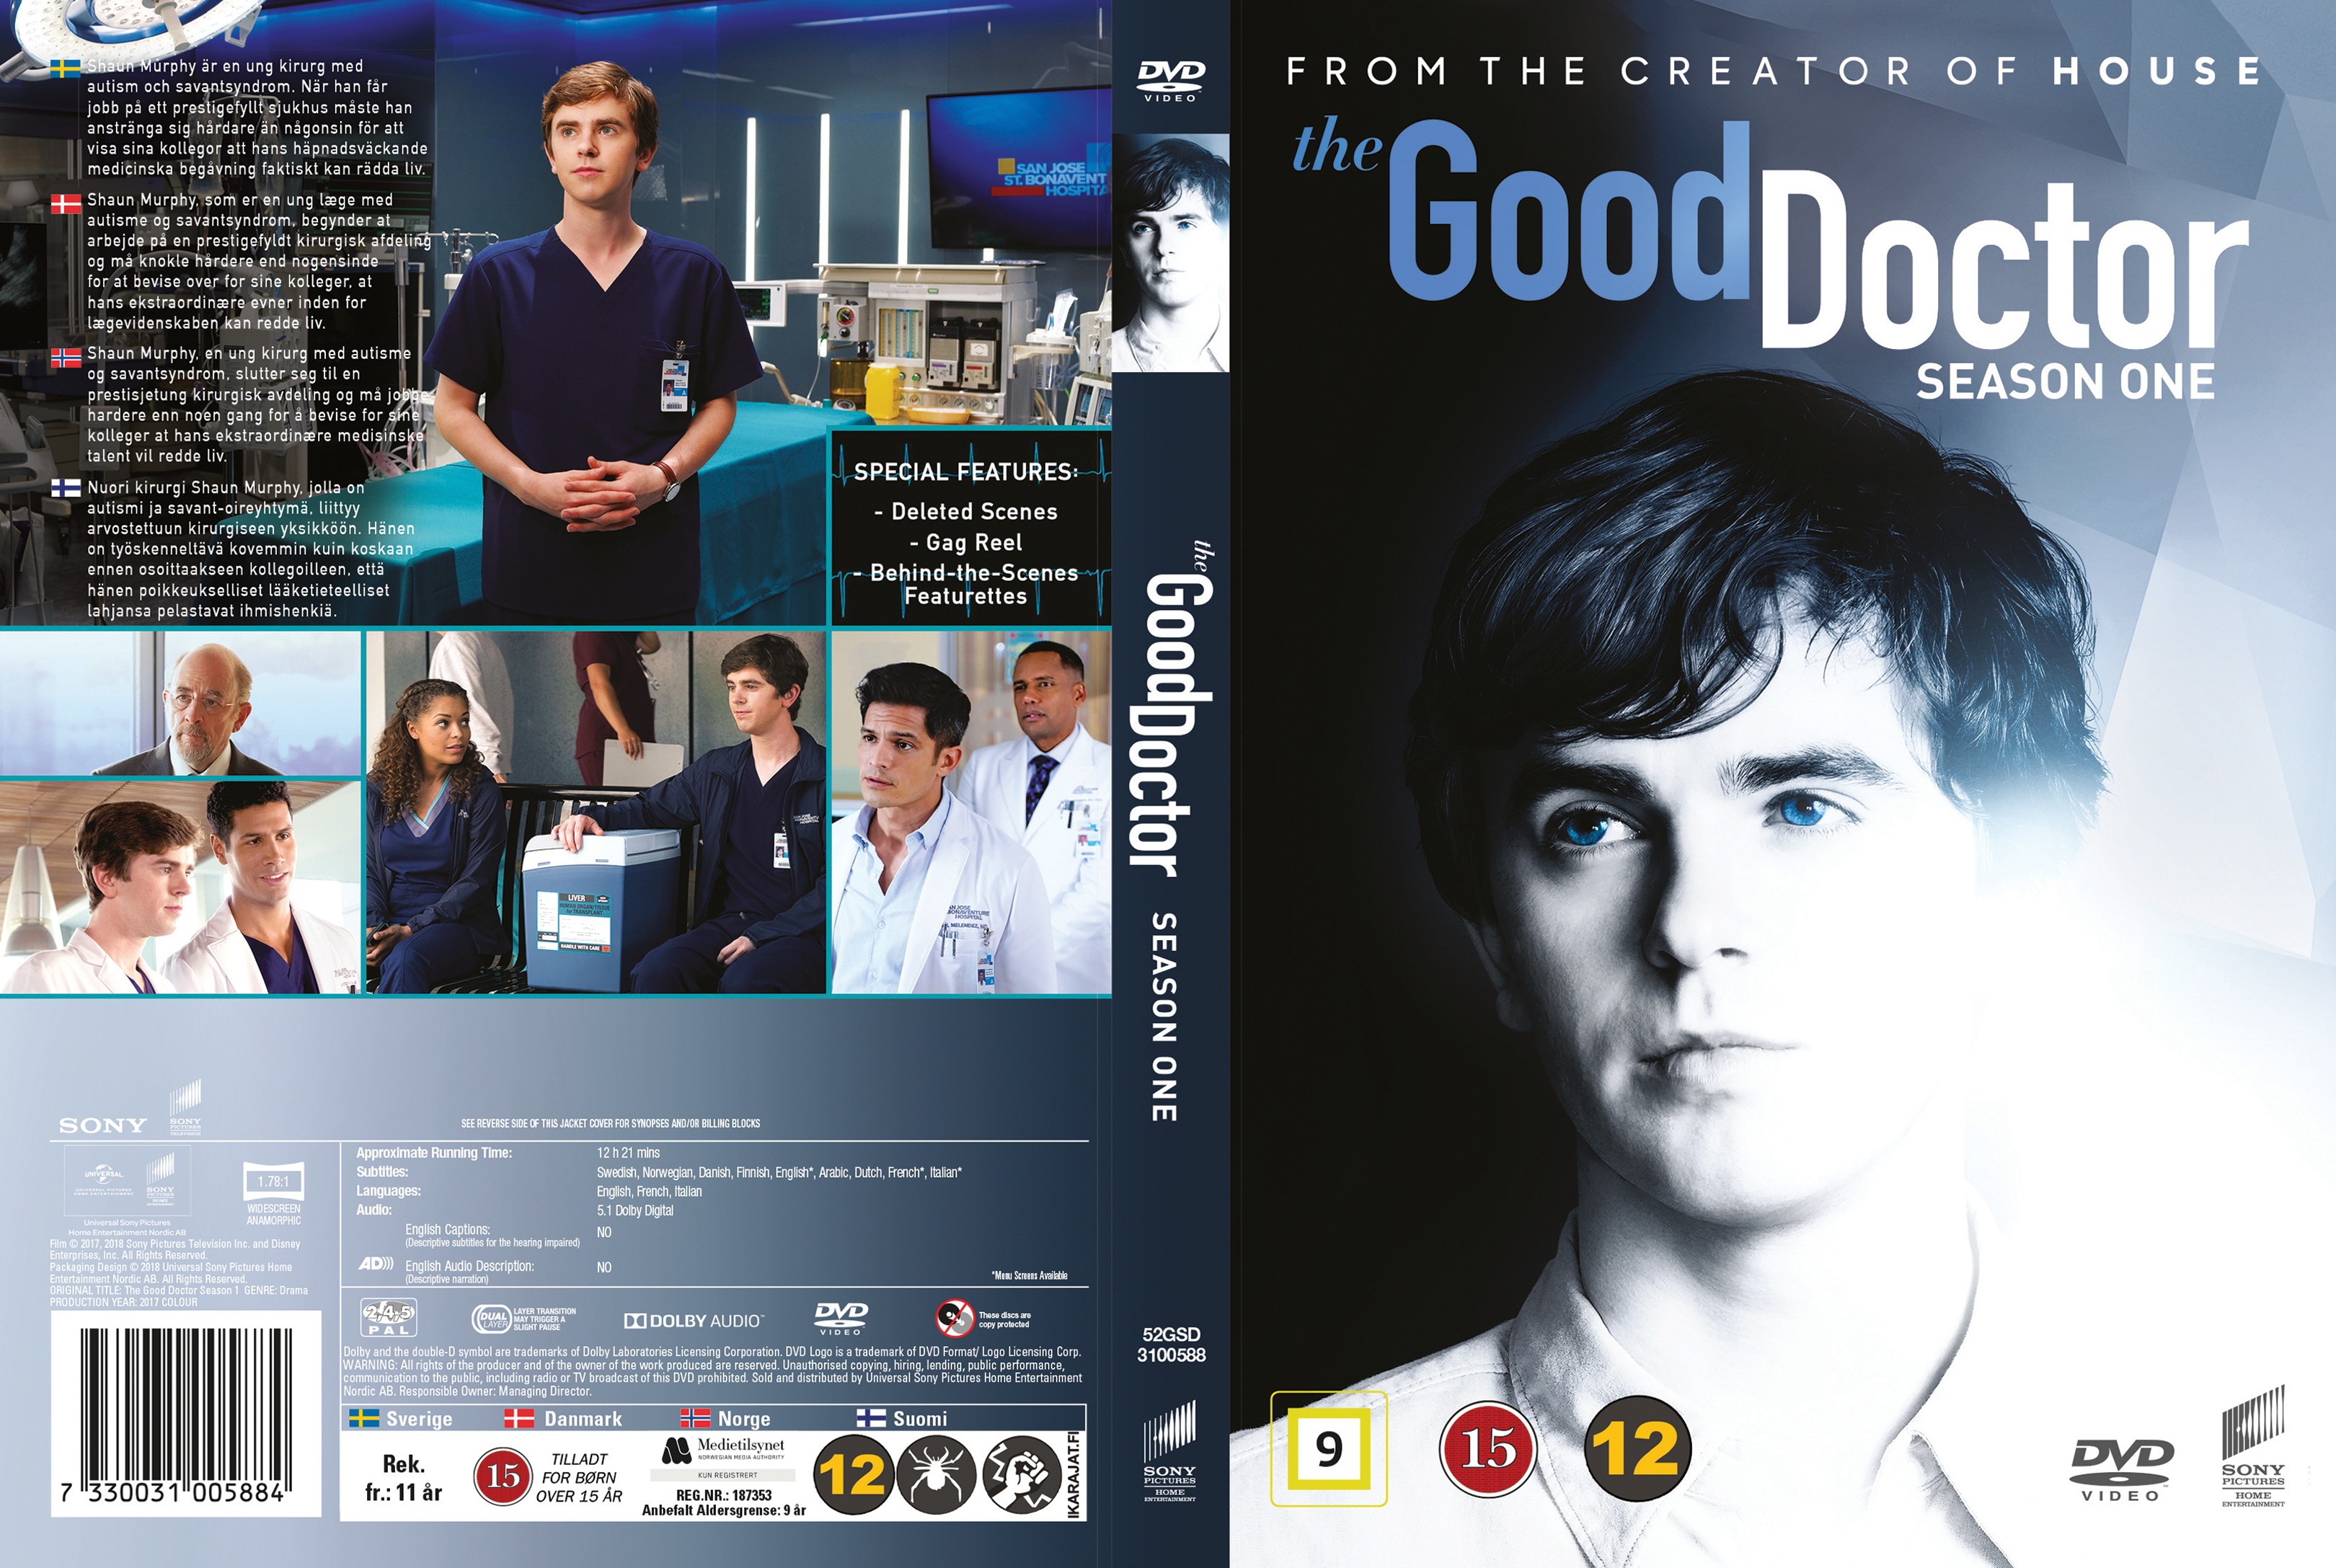 Covers Box Sk The Good Doctor Season 1 Nordic 2017 High Quality Dvd Blueray Movie